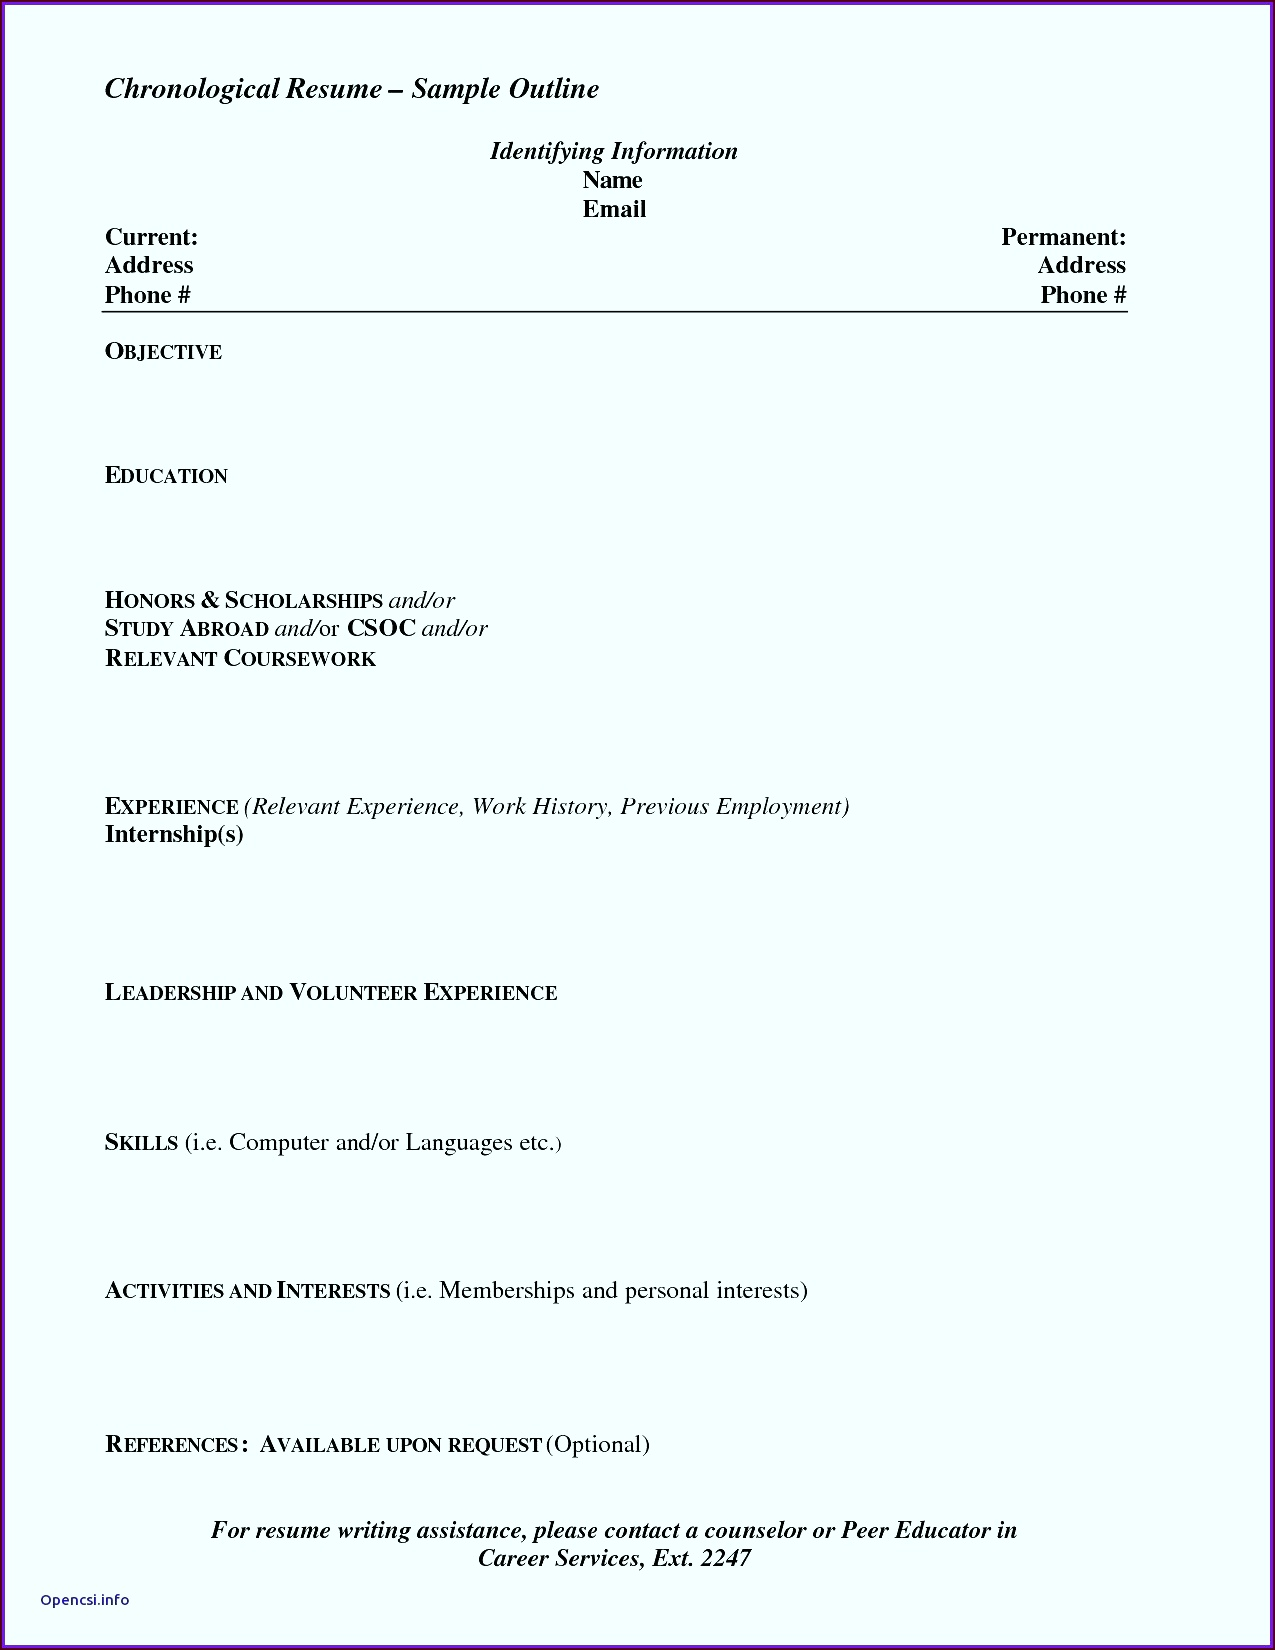 Luxury microsoft word resignation letter template business free sample resume fresh resume templats unique formatted resume uruue